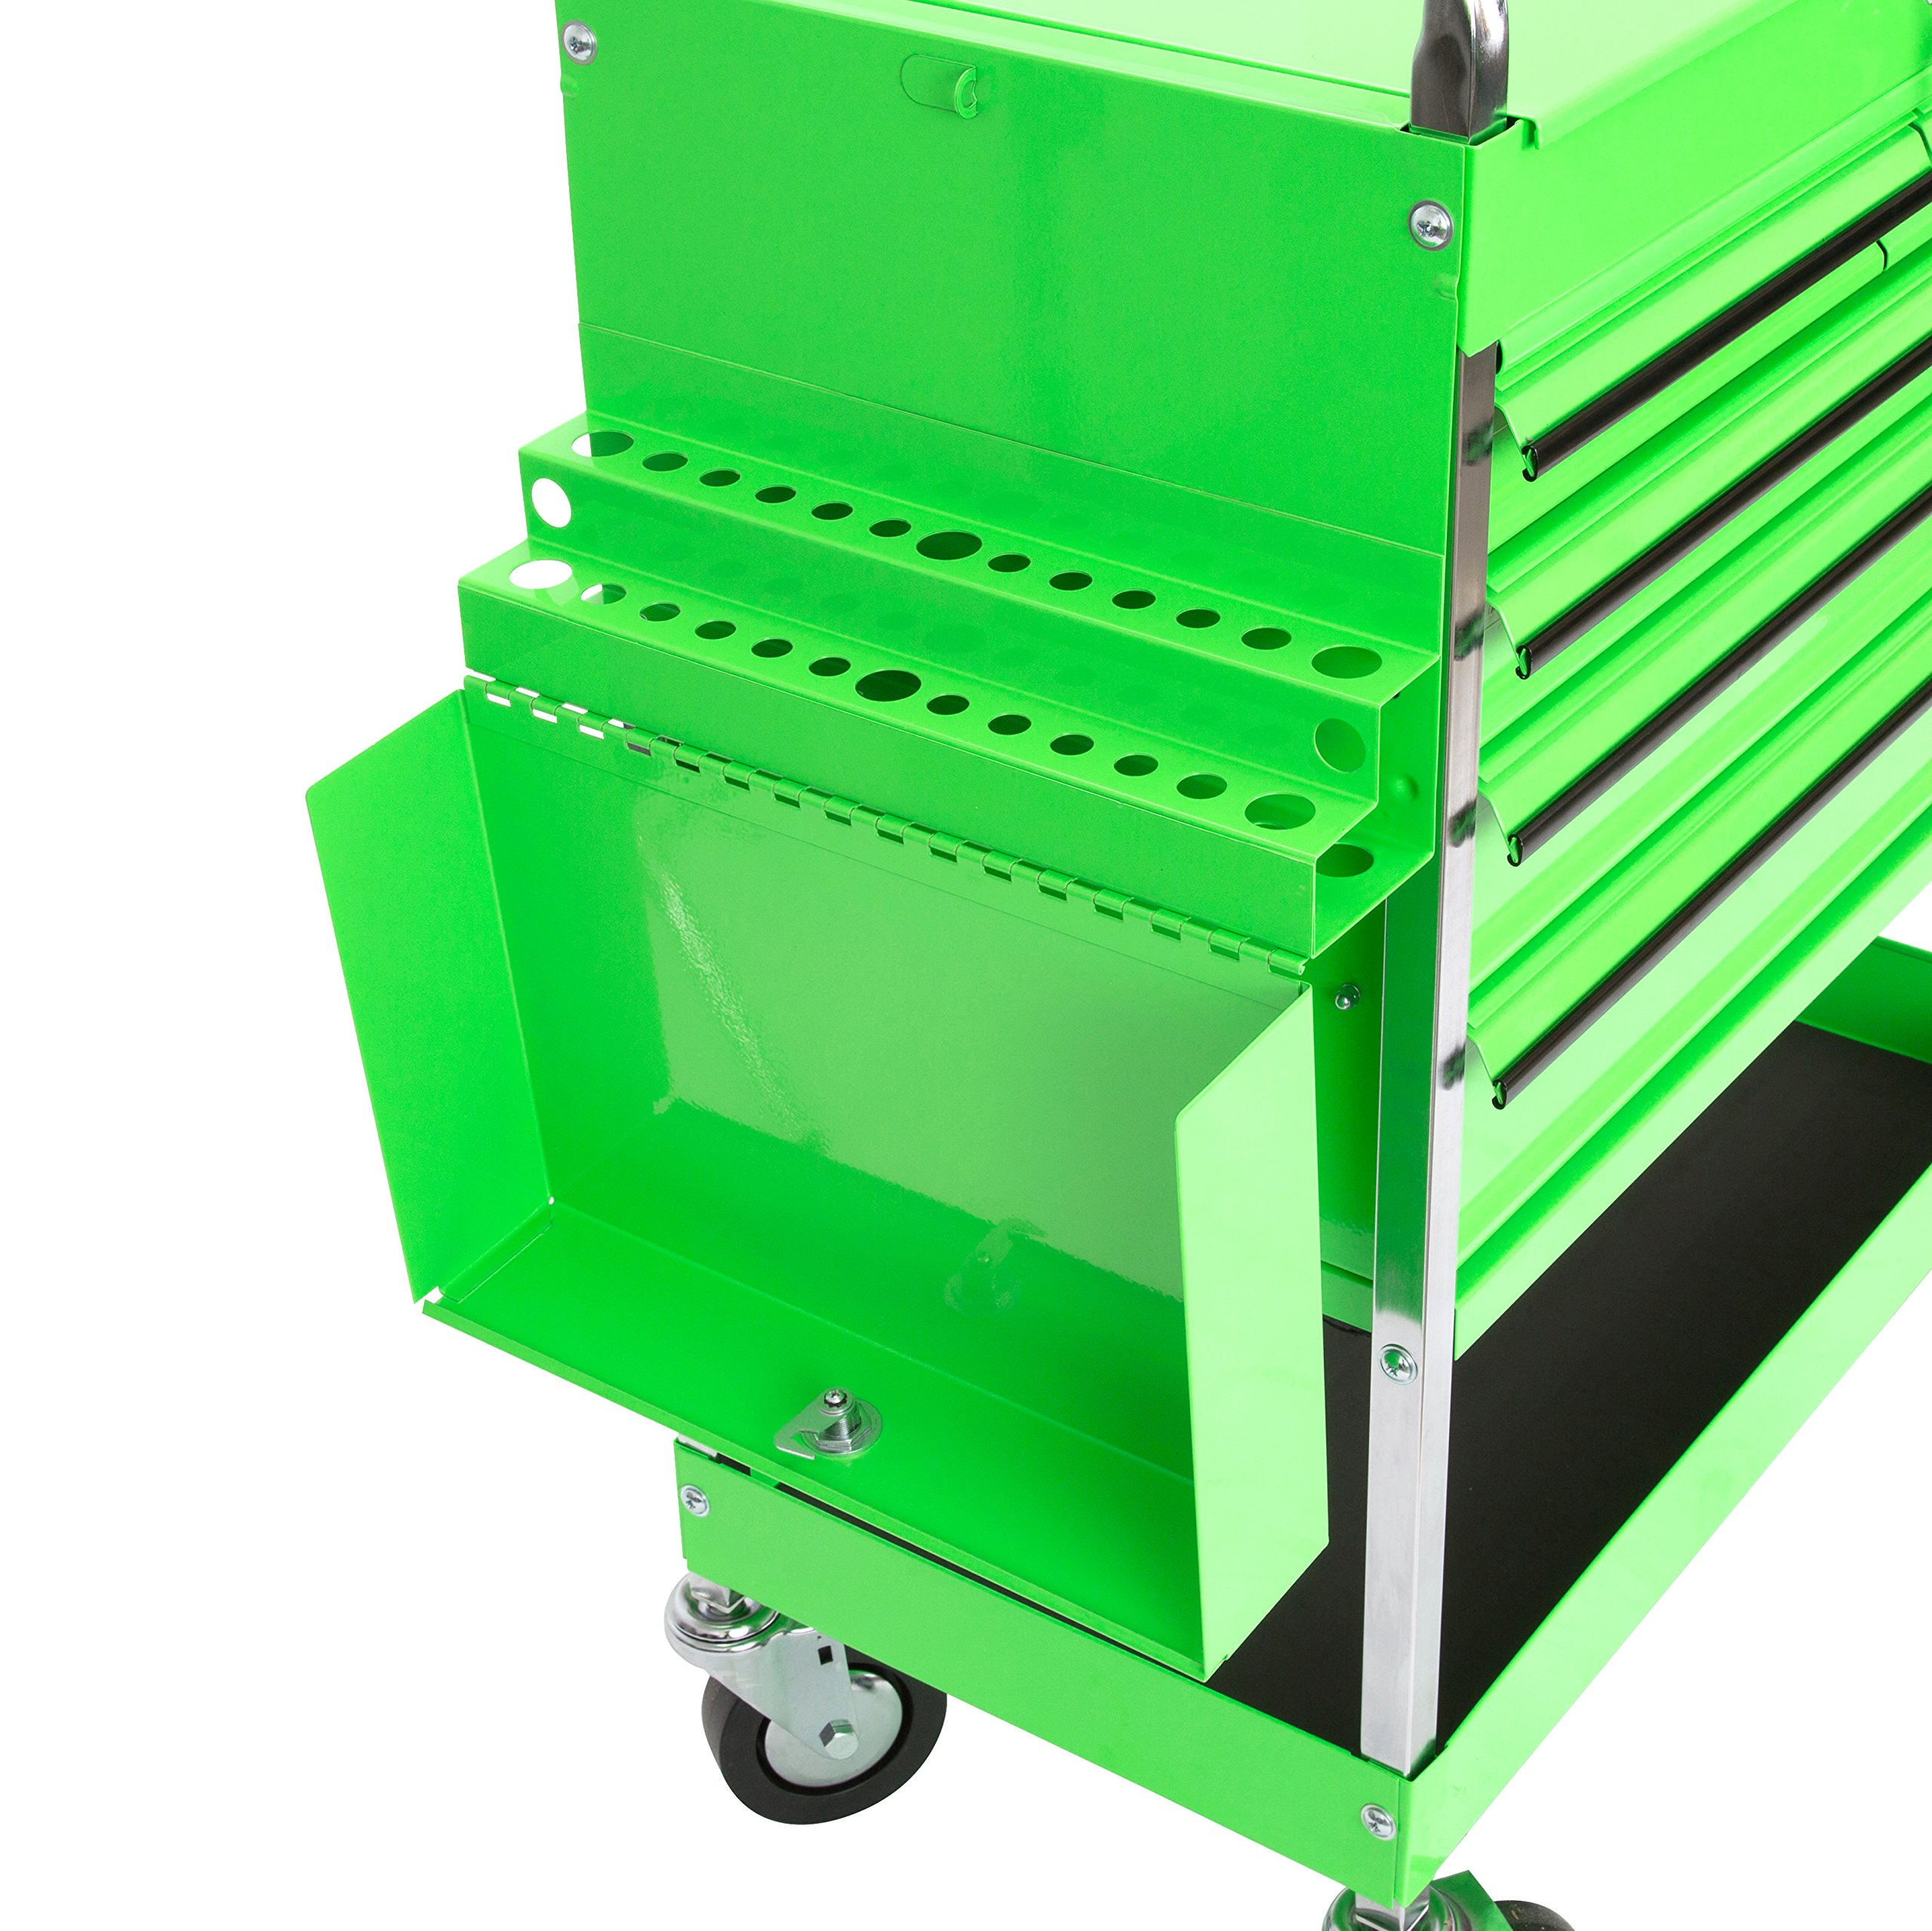 Professional Service Cart - 5 Drawer and 1 Tray (Green) by OEMTOOLS (Image #8)